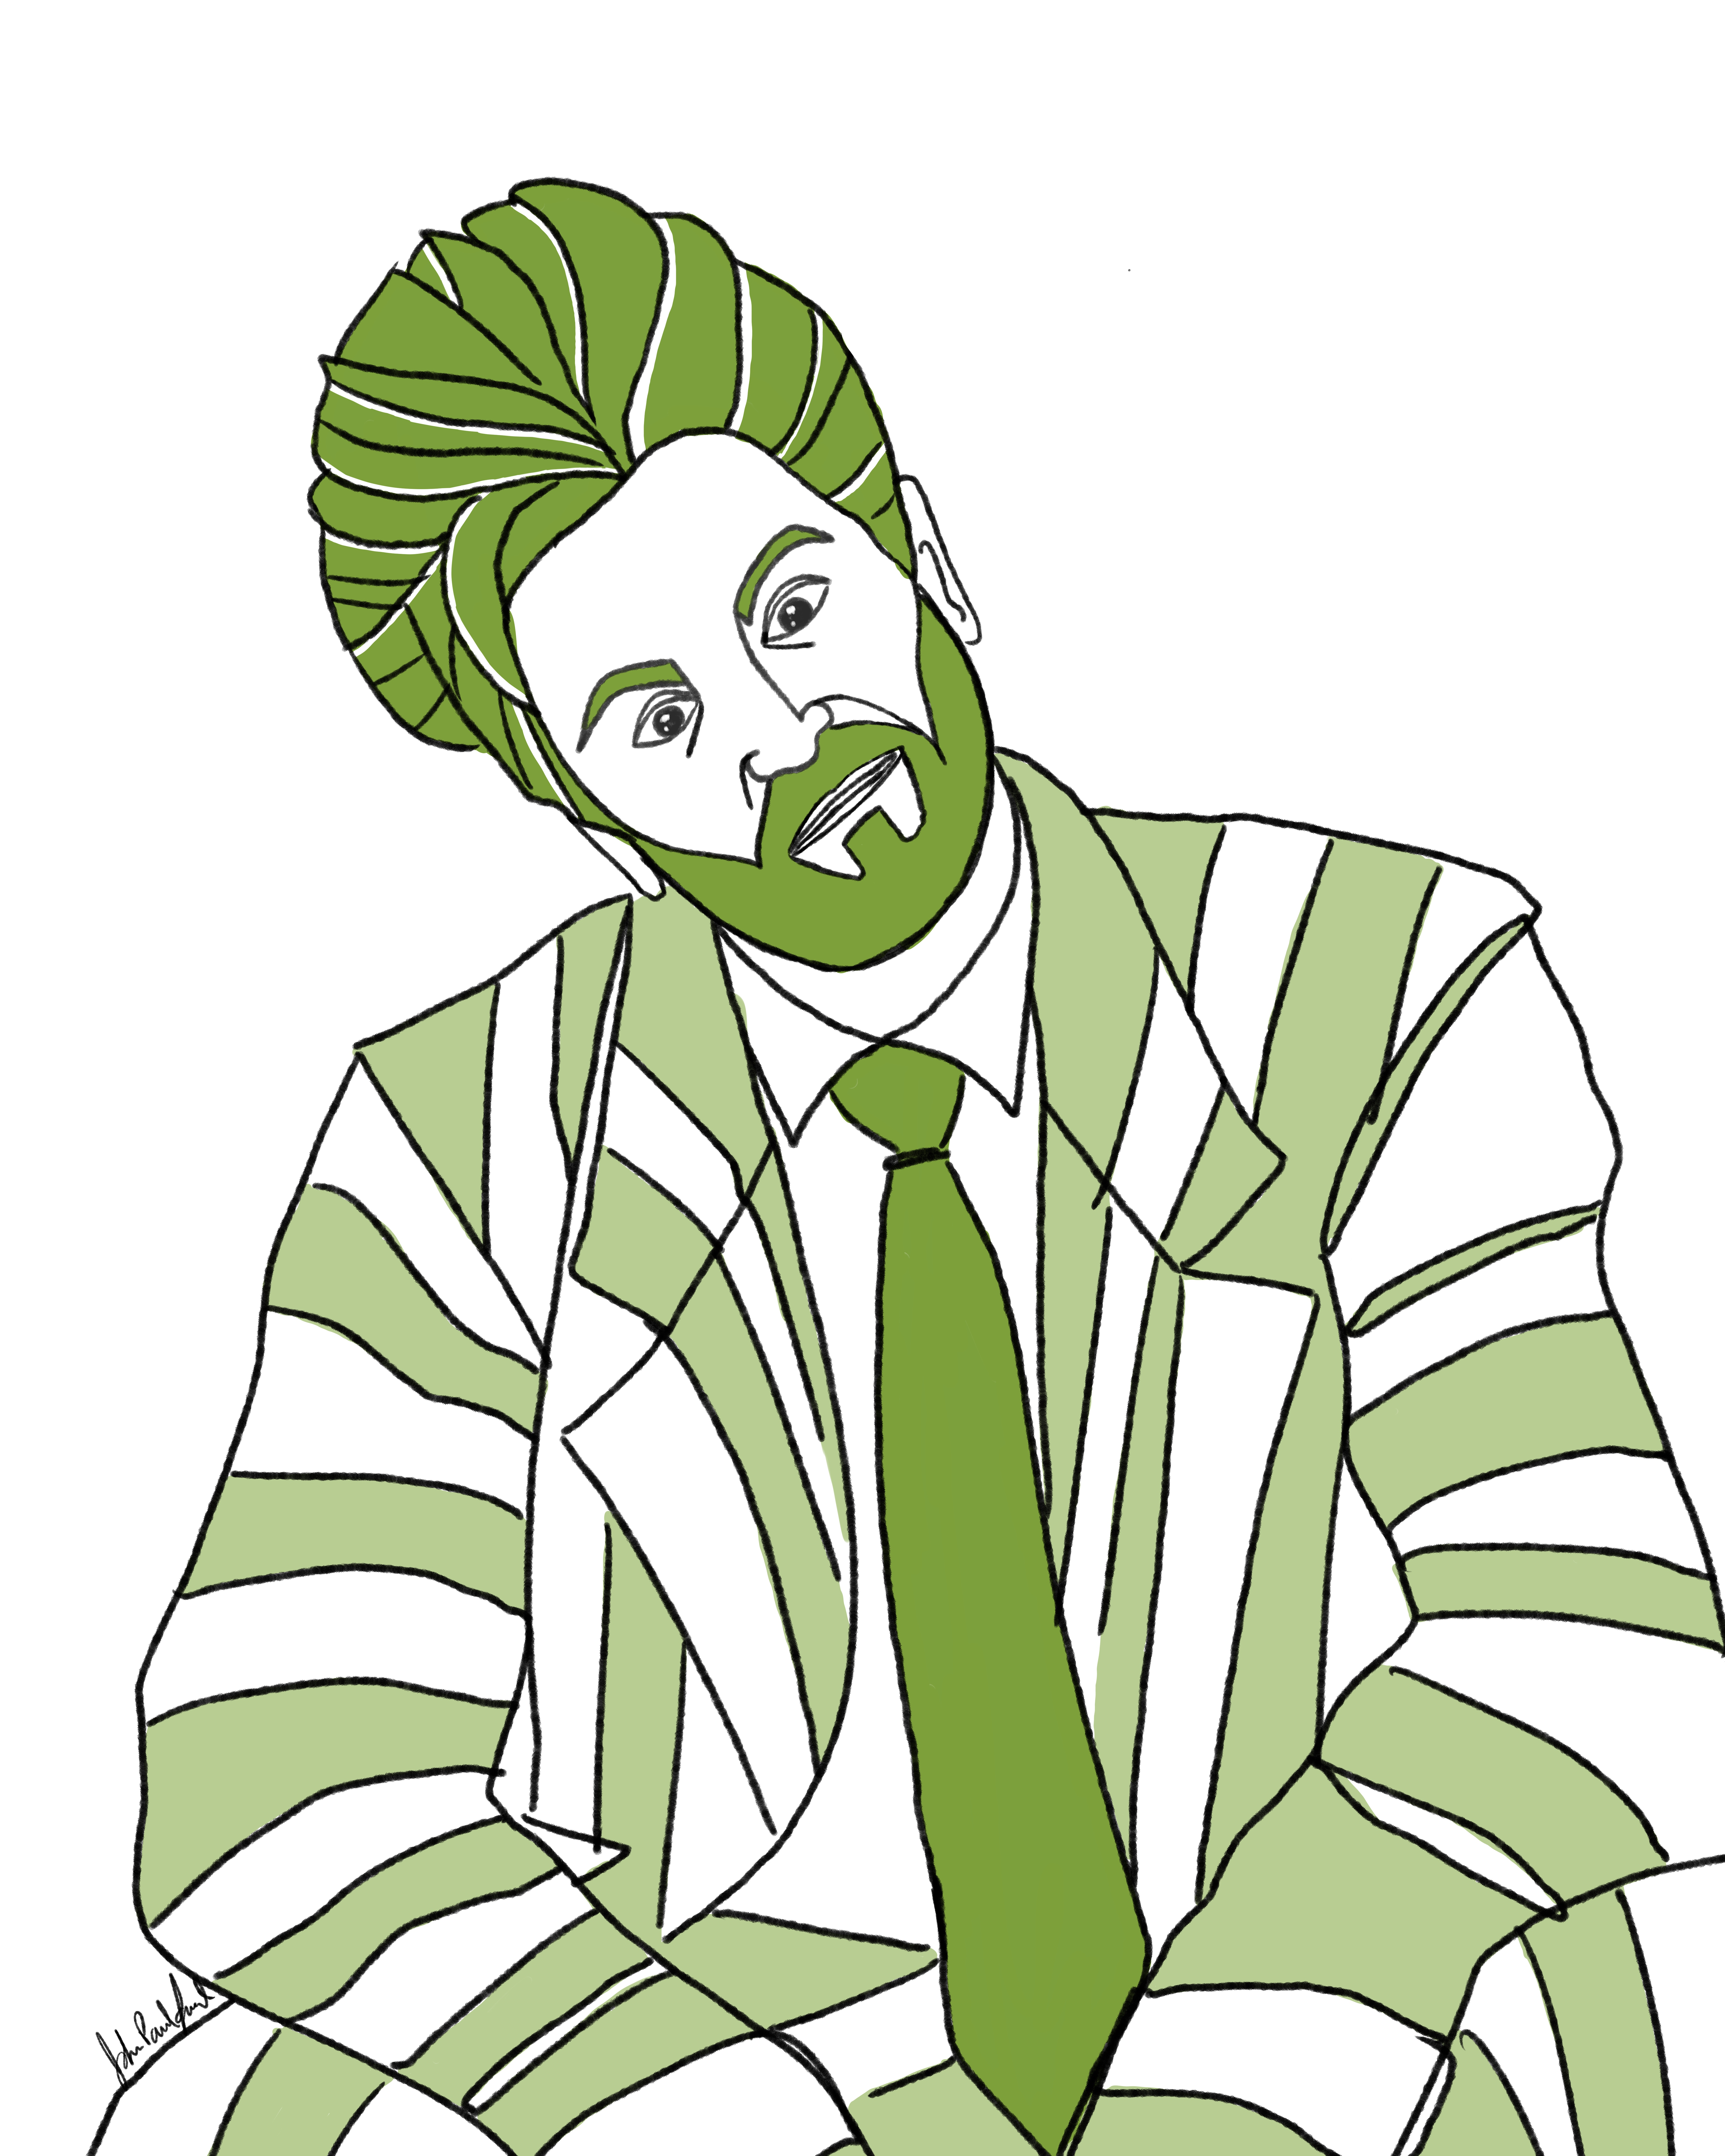 Alex Brightman in <i>Beetlejuice</i>. Illustration by John Paul Snead.